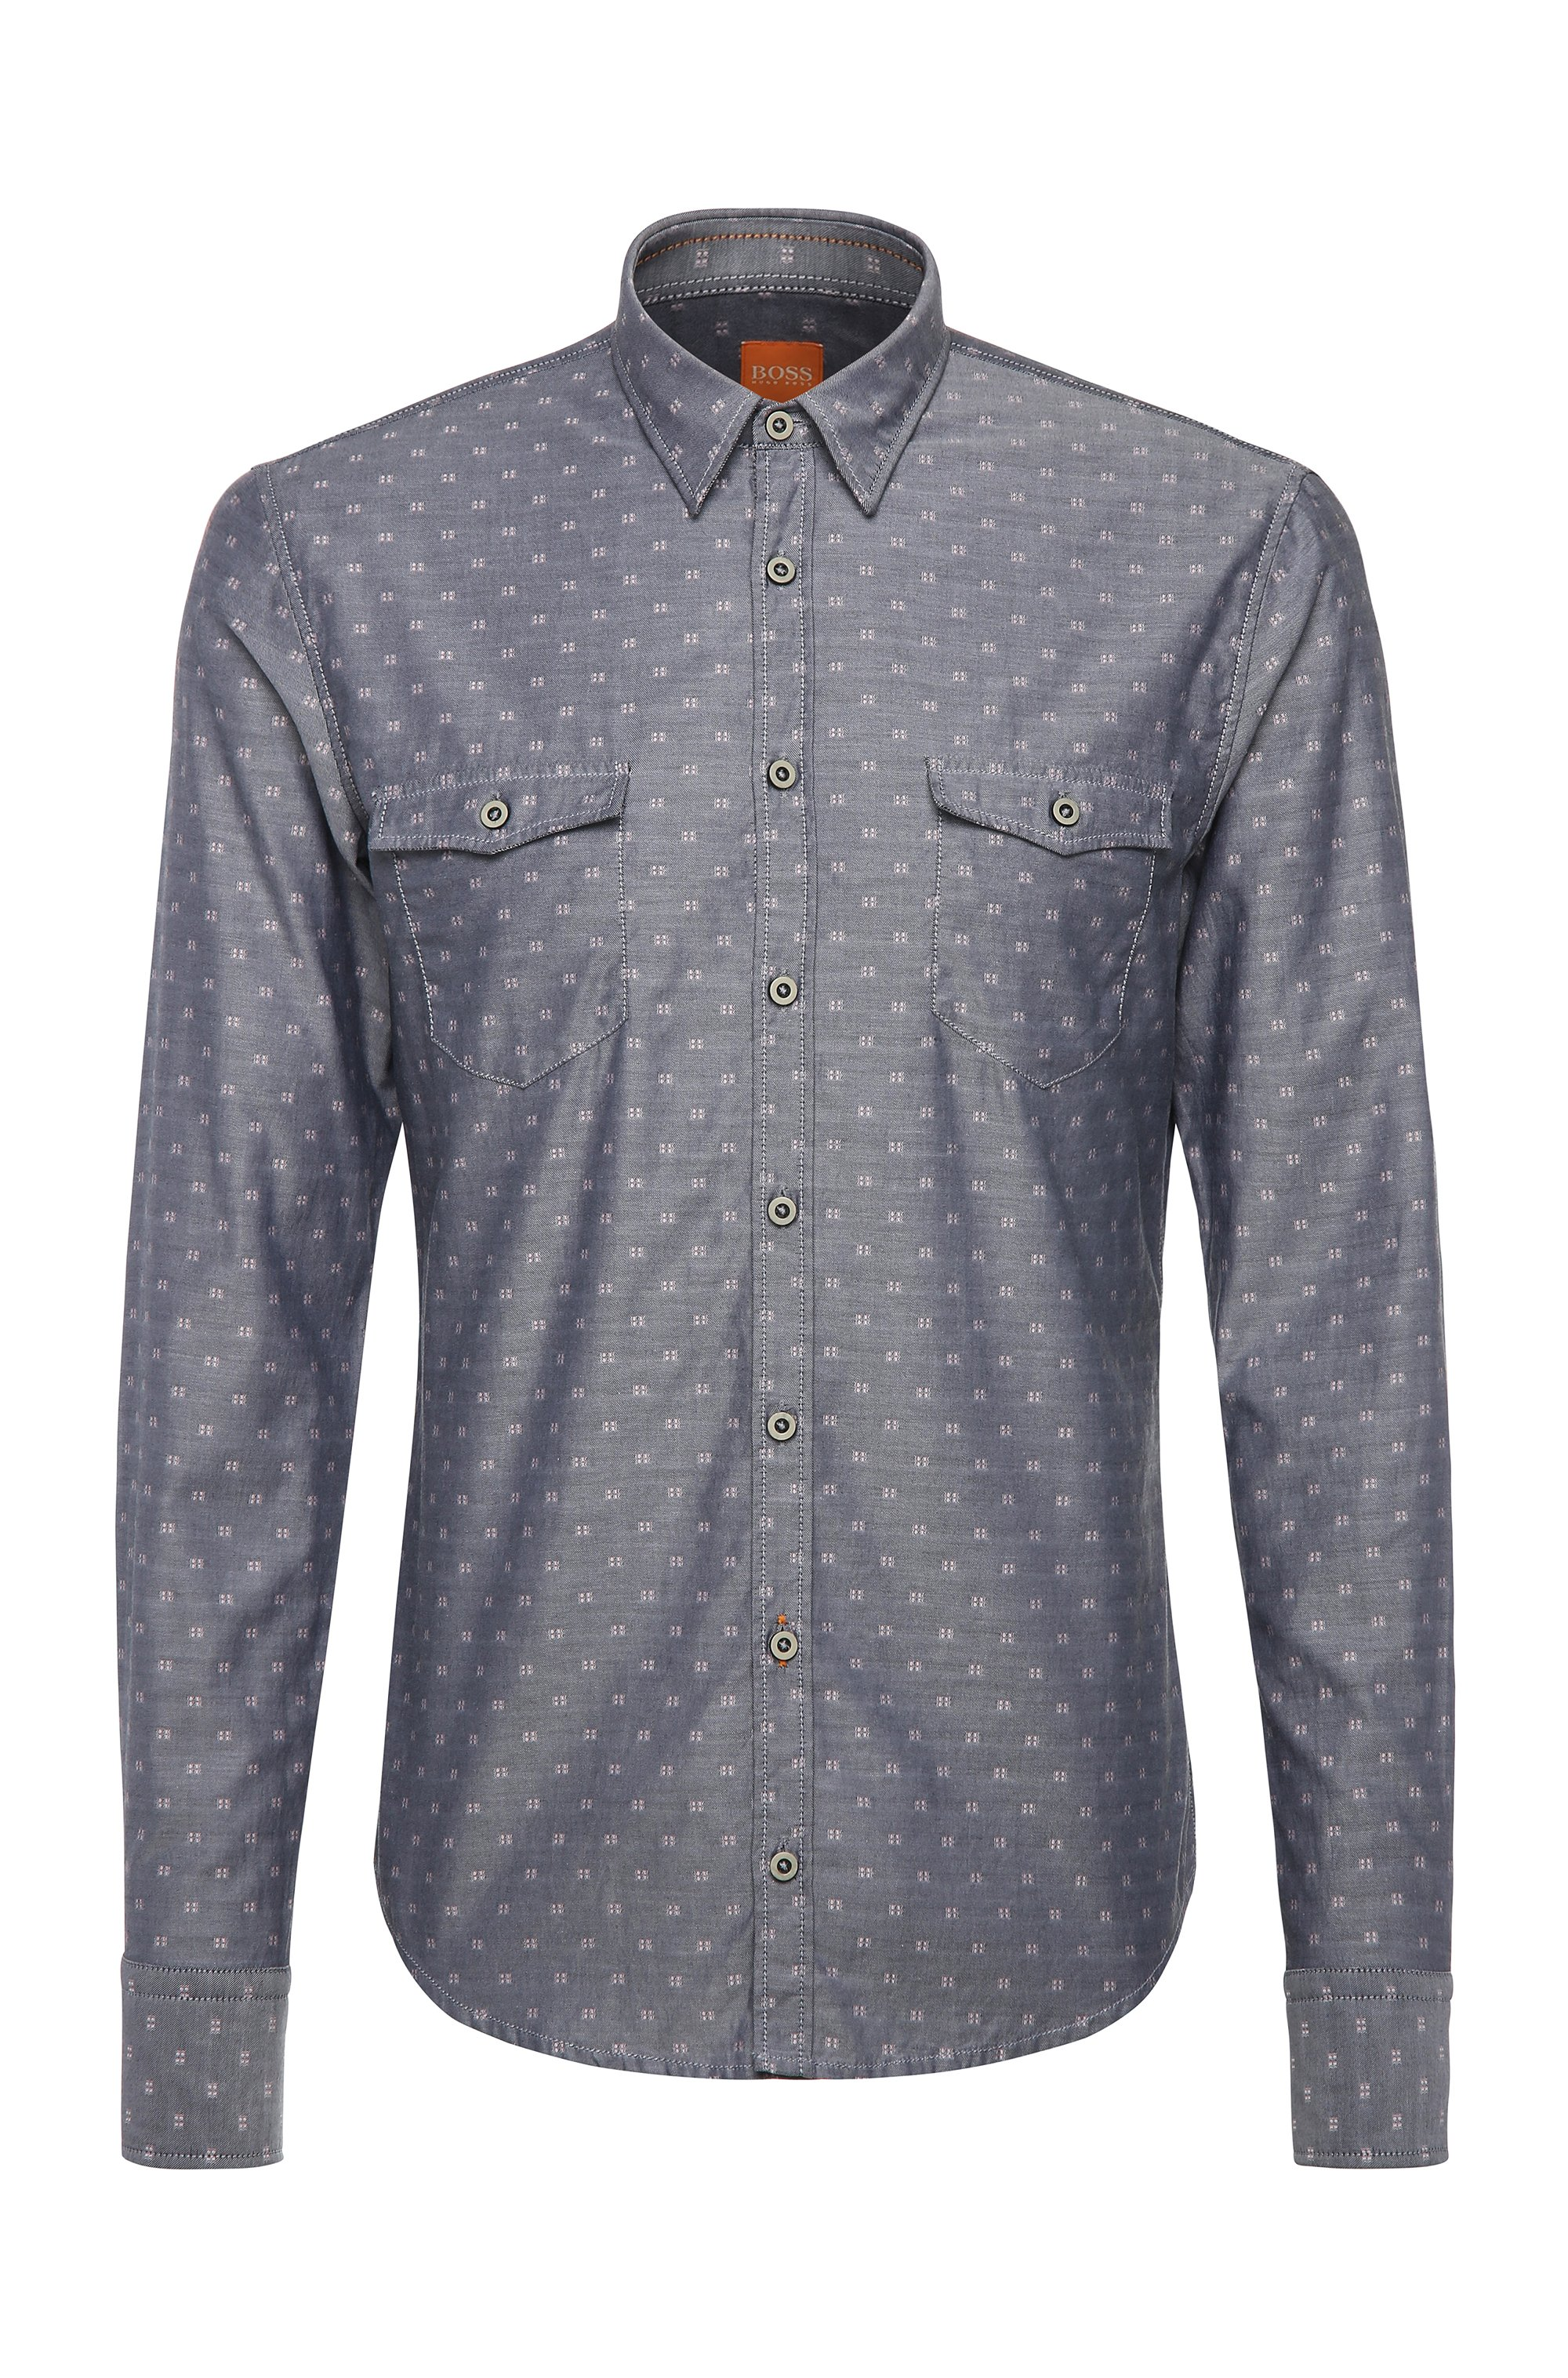 Cotton Button Down Shirt, Slim Fit | EdoslimE, Light Grey